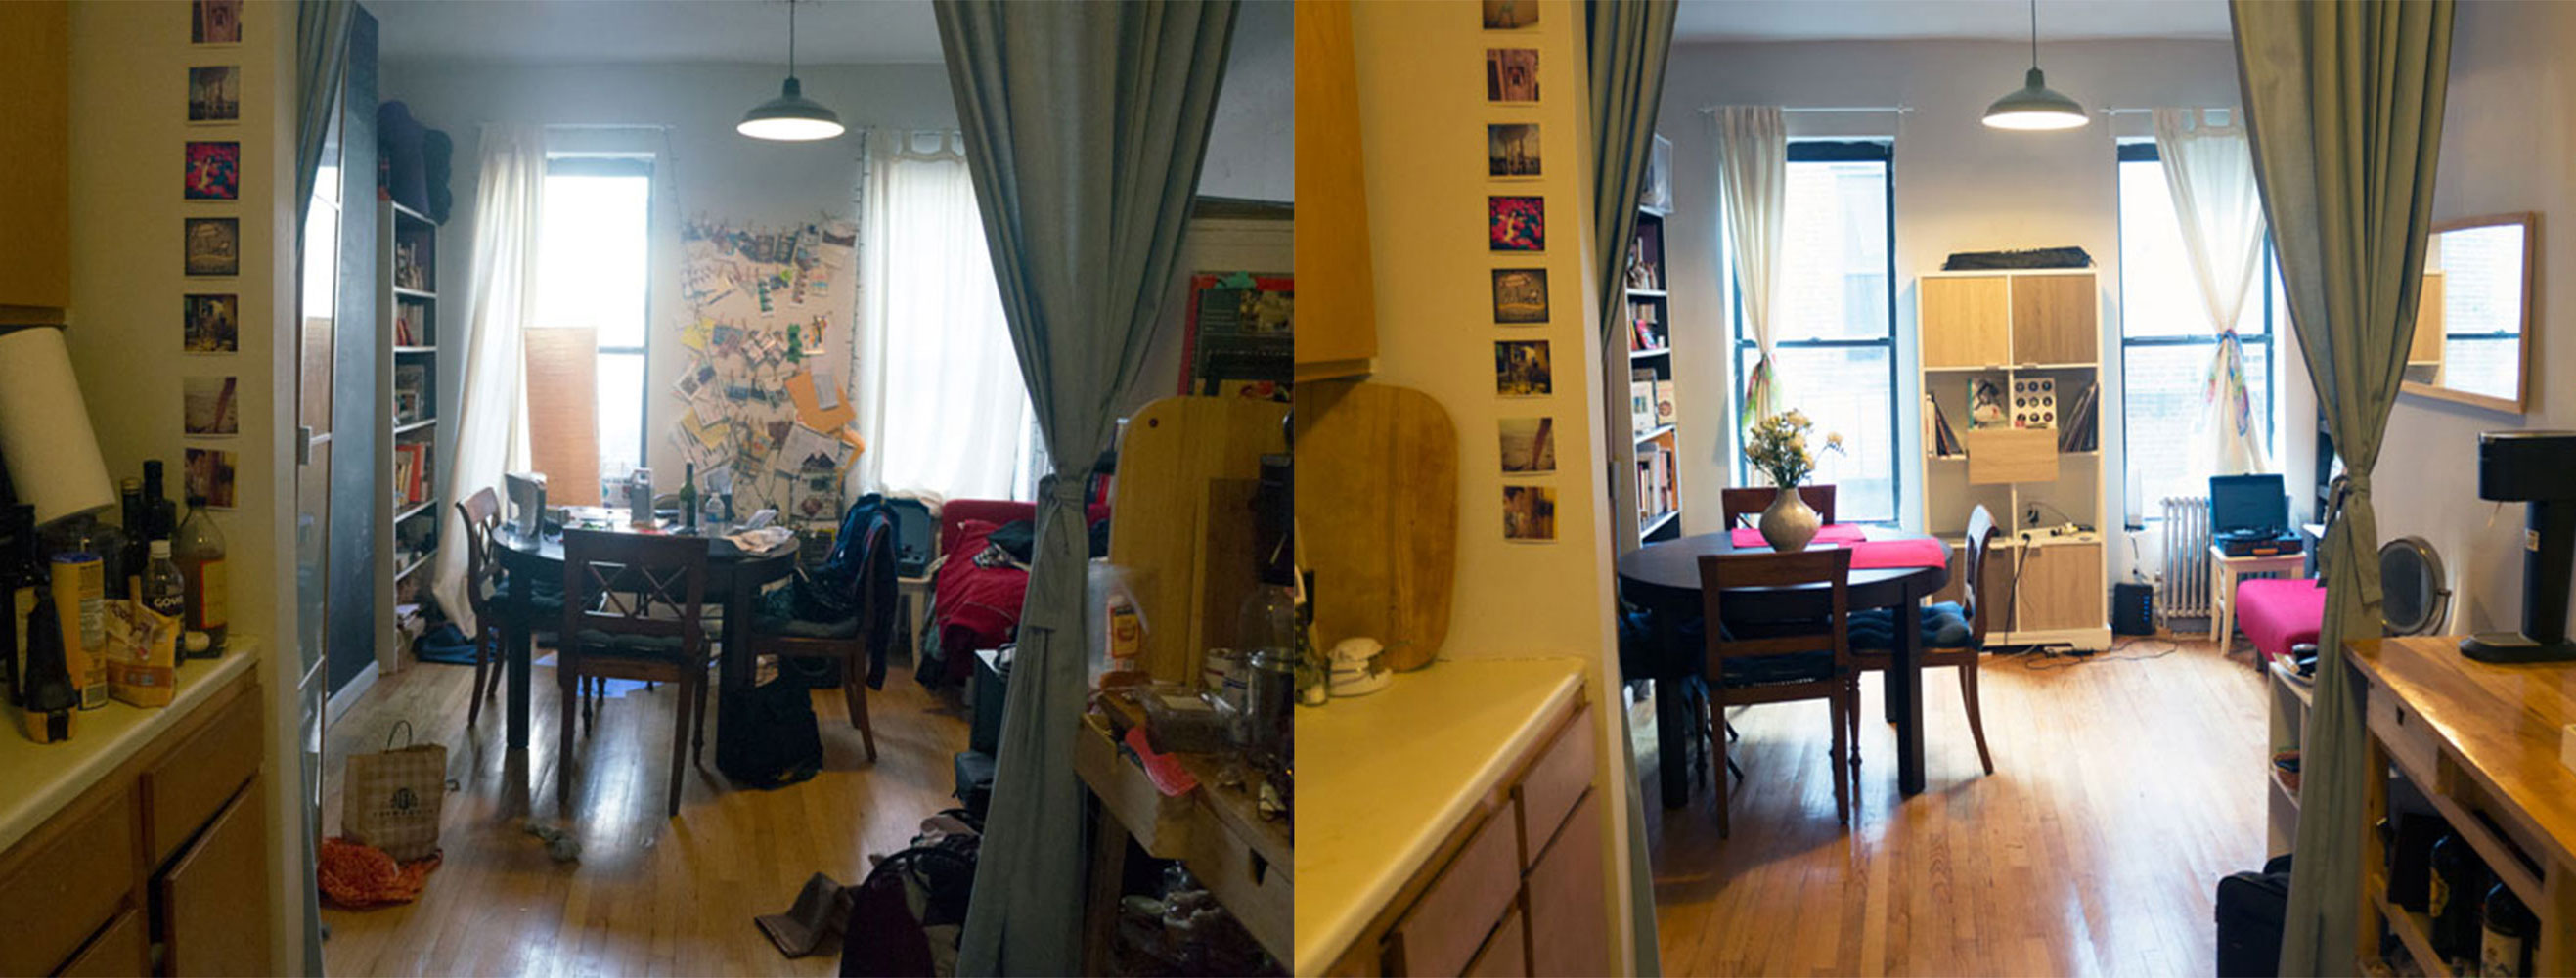 Before/After (Photo by Kavitha Surana)